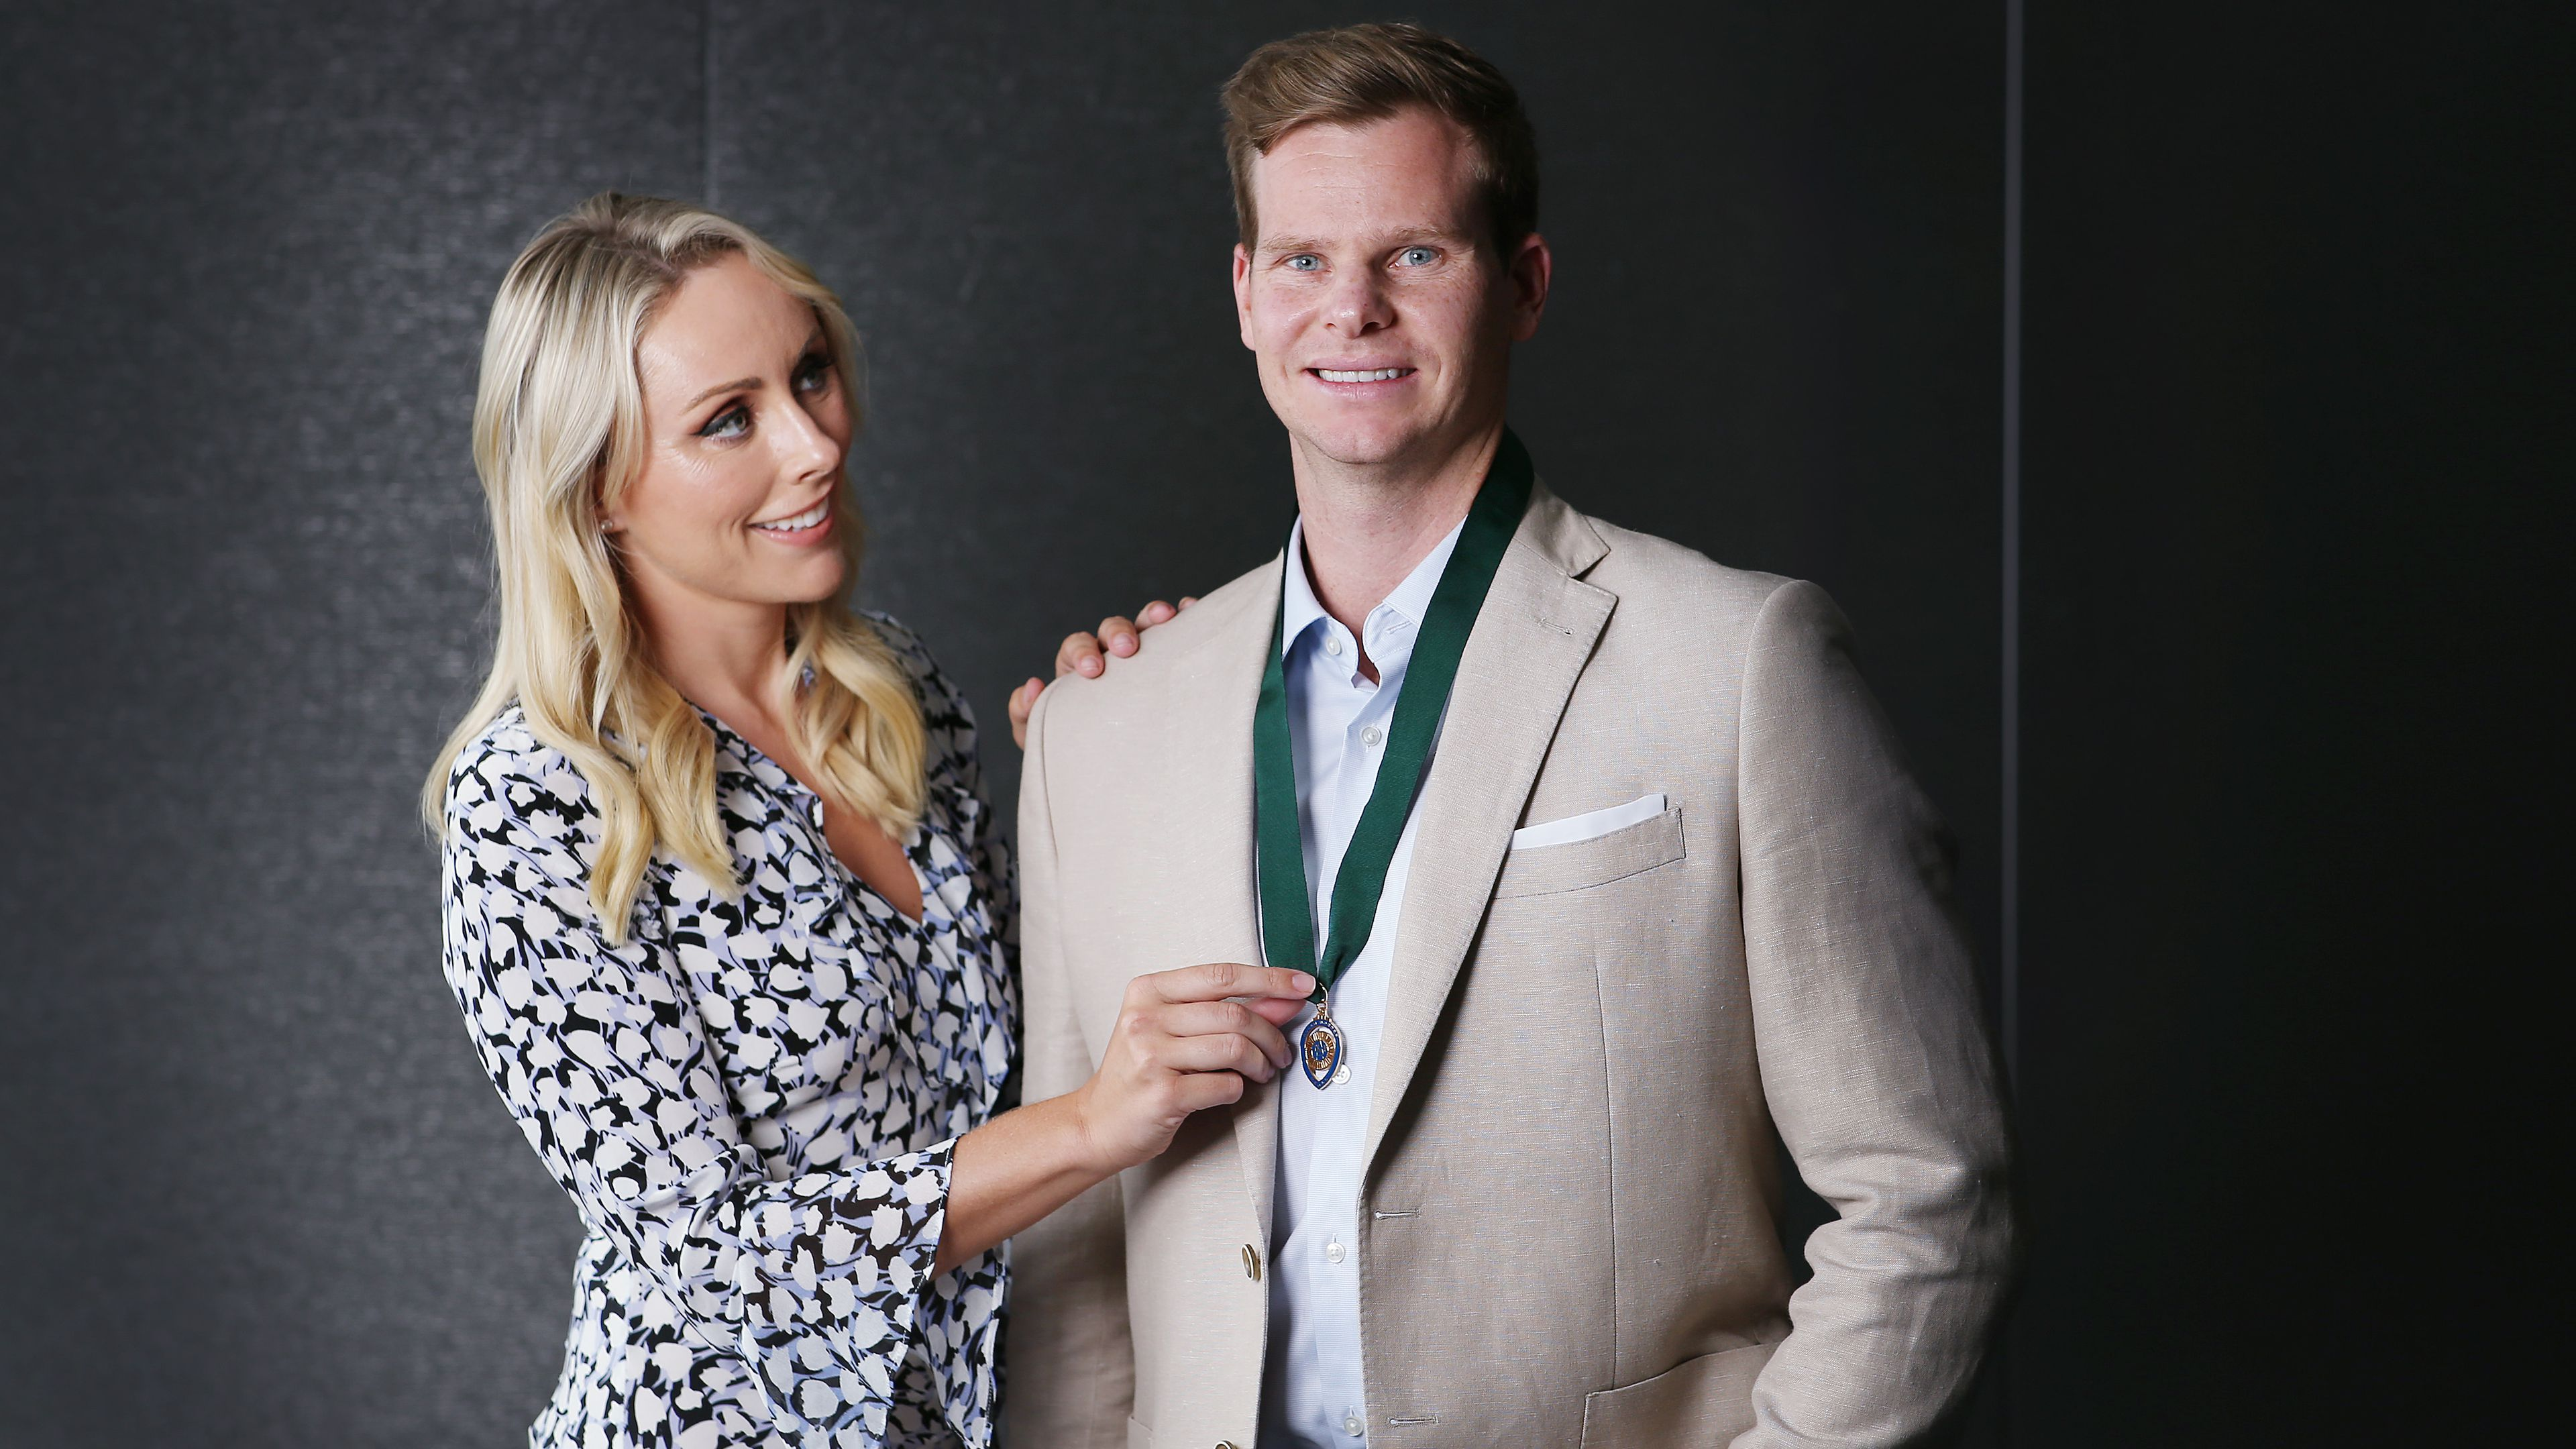 Steve Smith wins third Allan Border Medal as Beth Mooney takes Belinda Clark Award